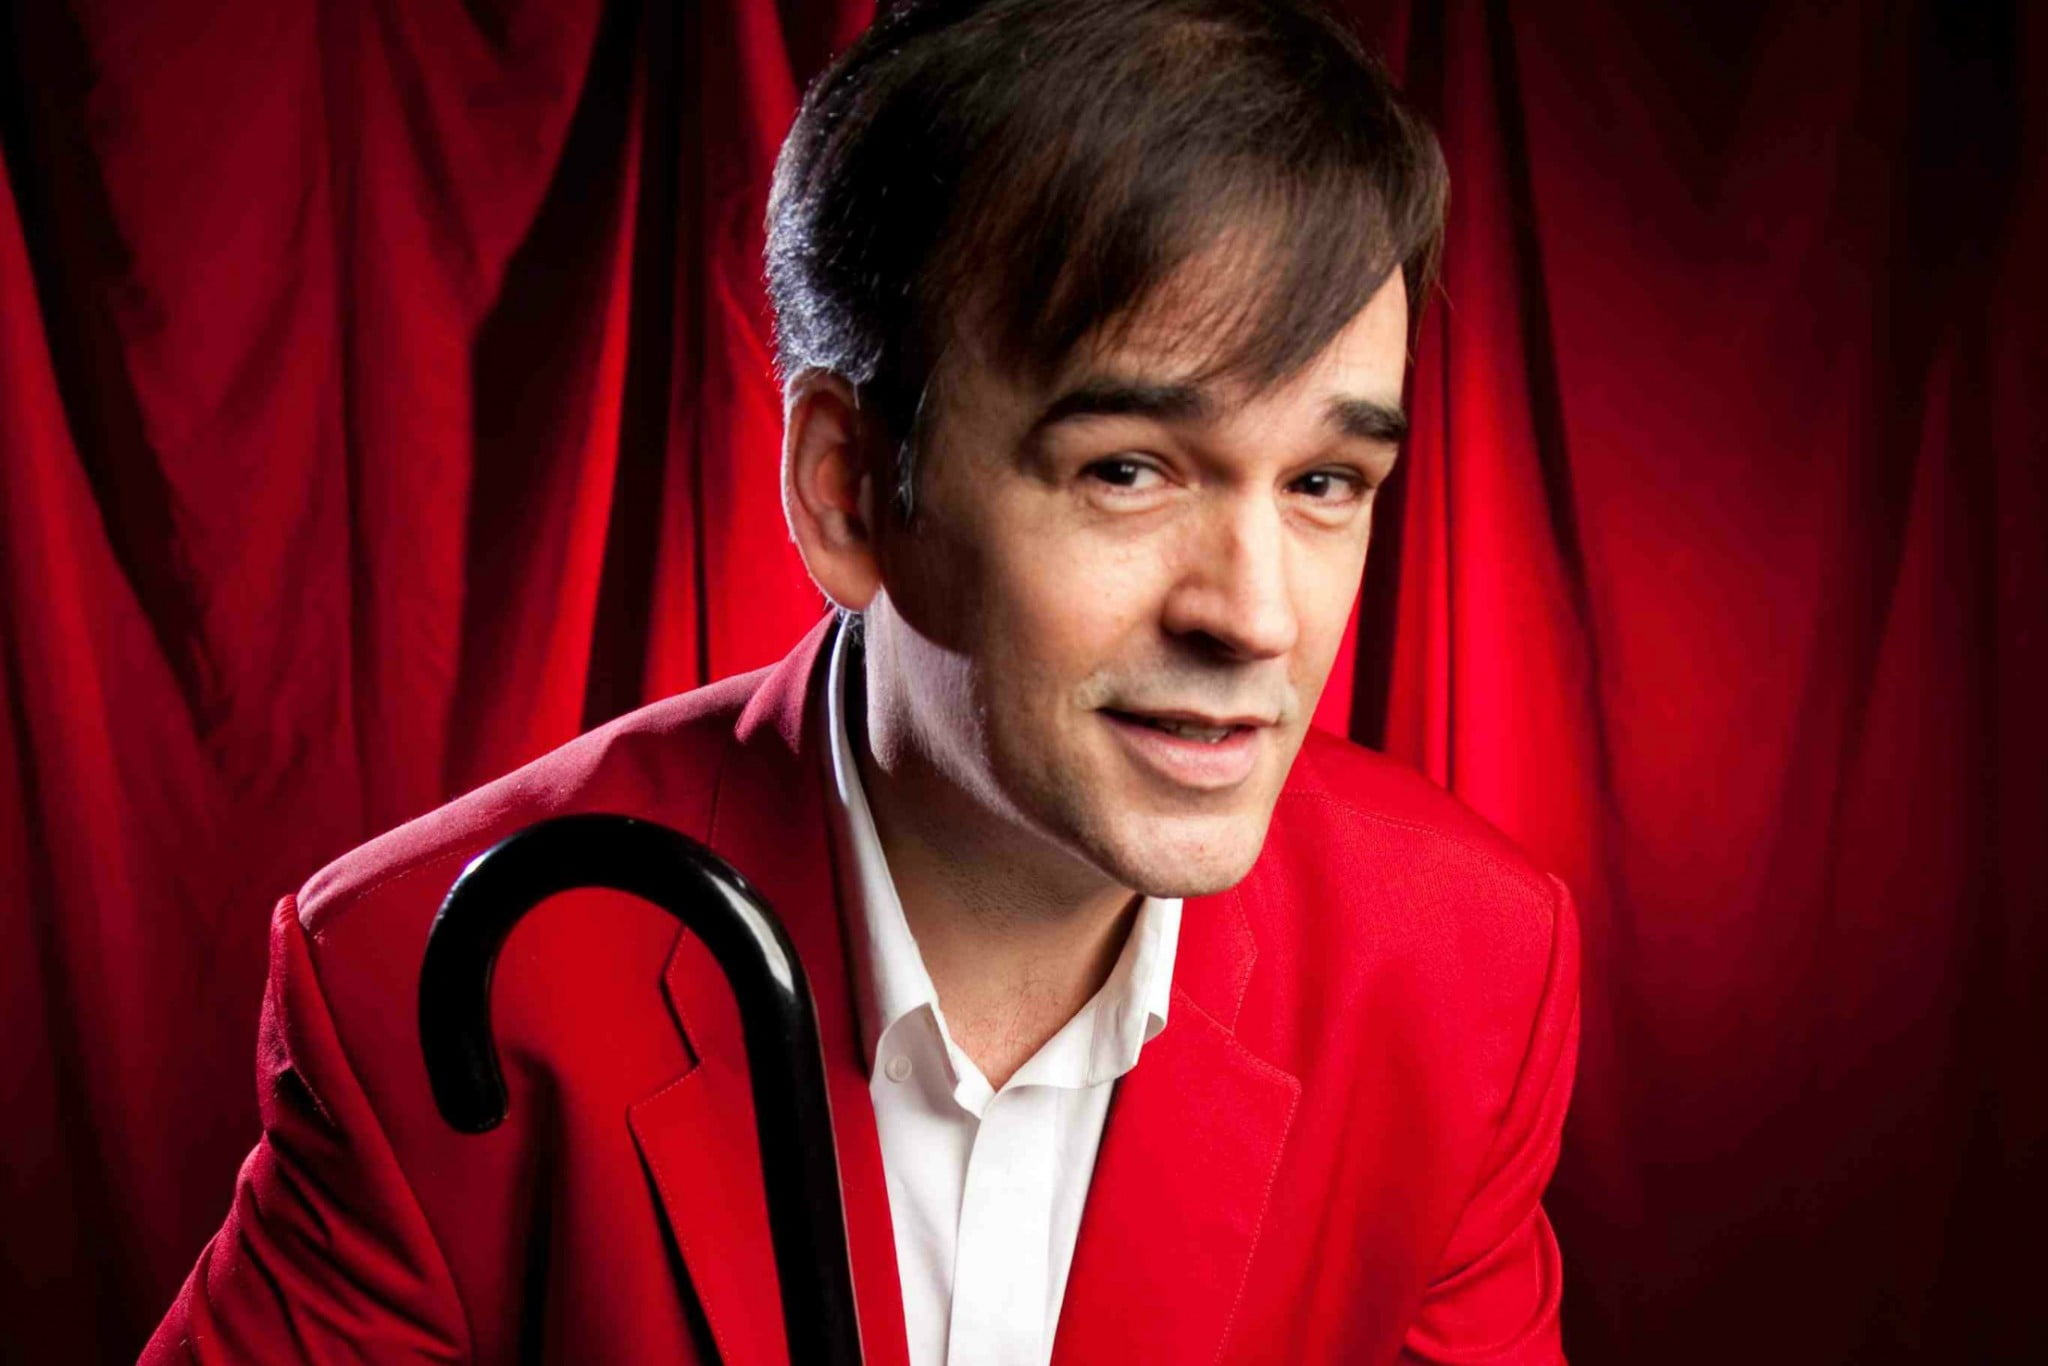 Tim Ferguson wearing red and holding cane